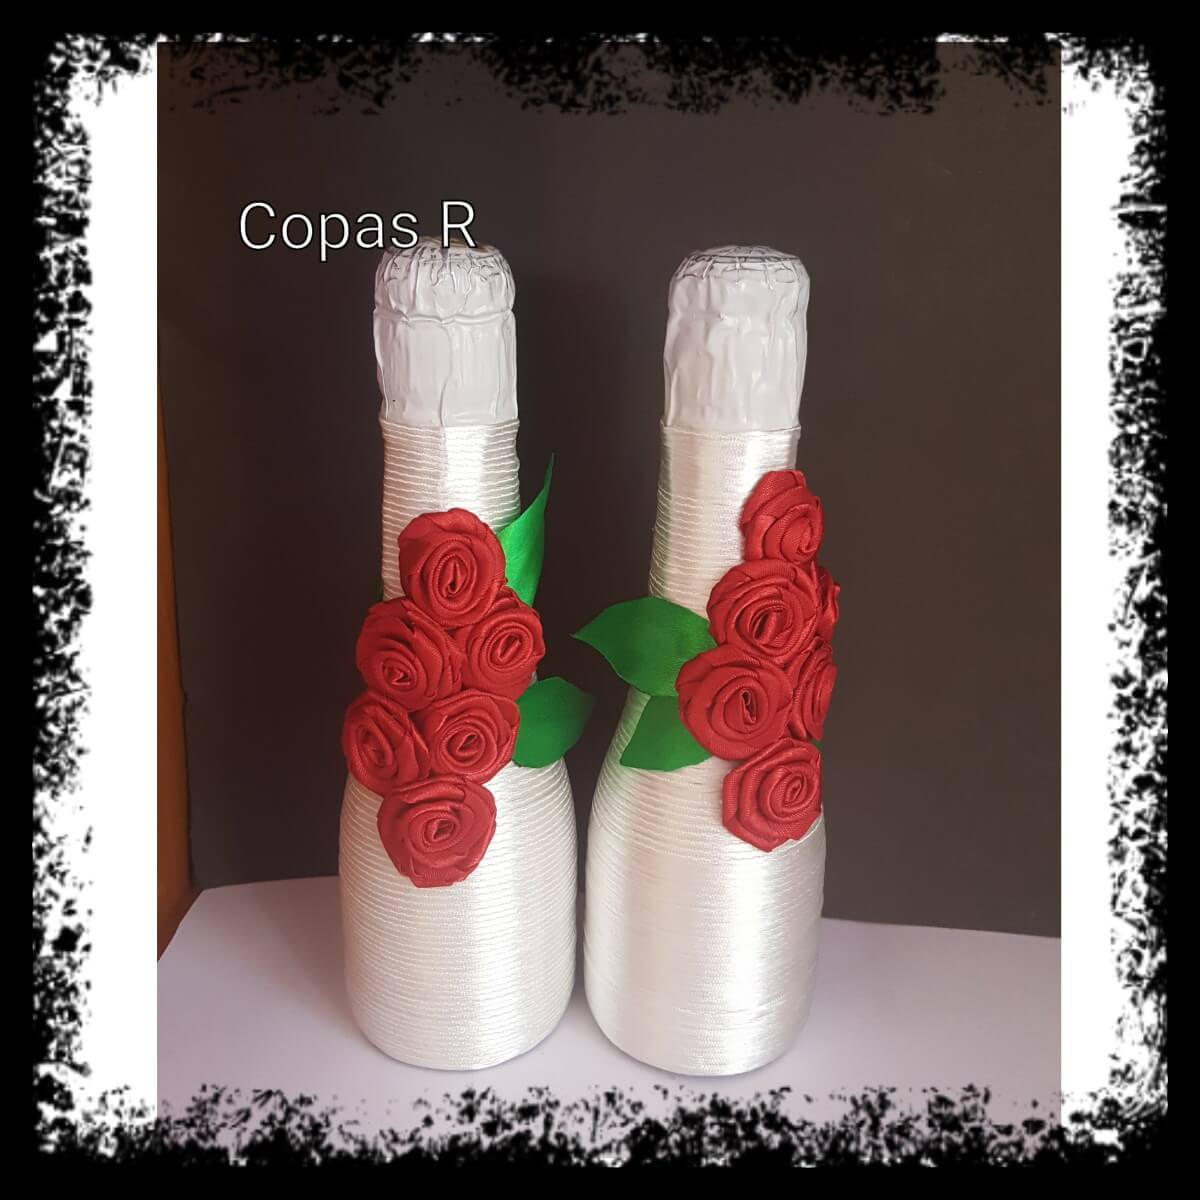 Botellas decoradas a mano for Copas decoradas a mano